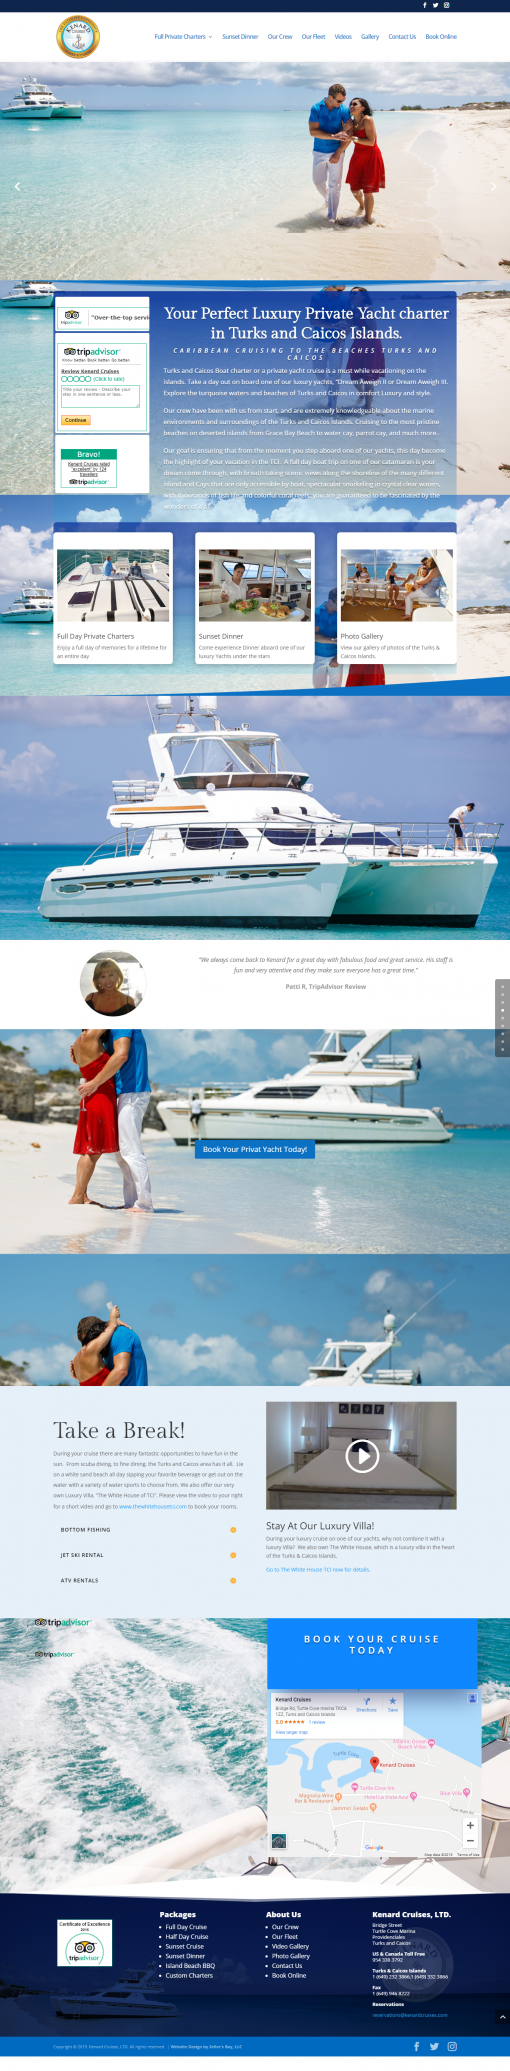 Custom Website For Kenard Cruises